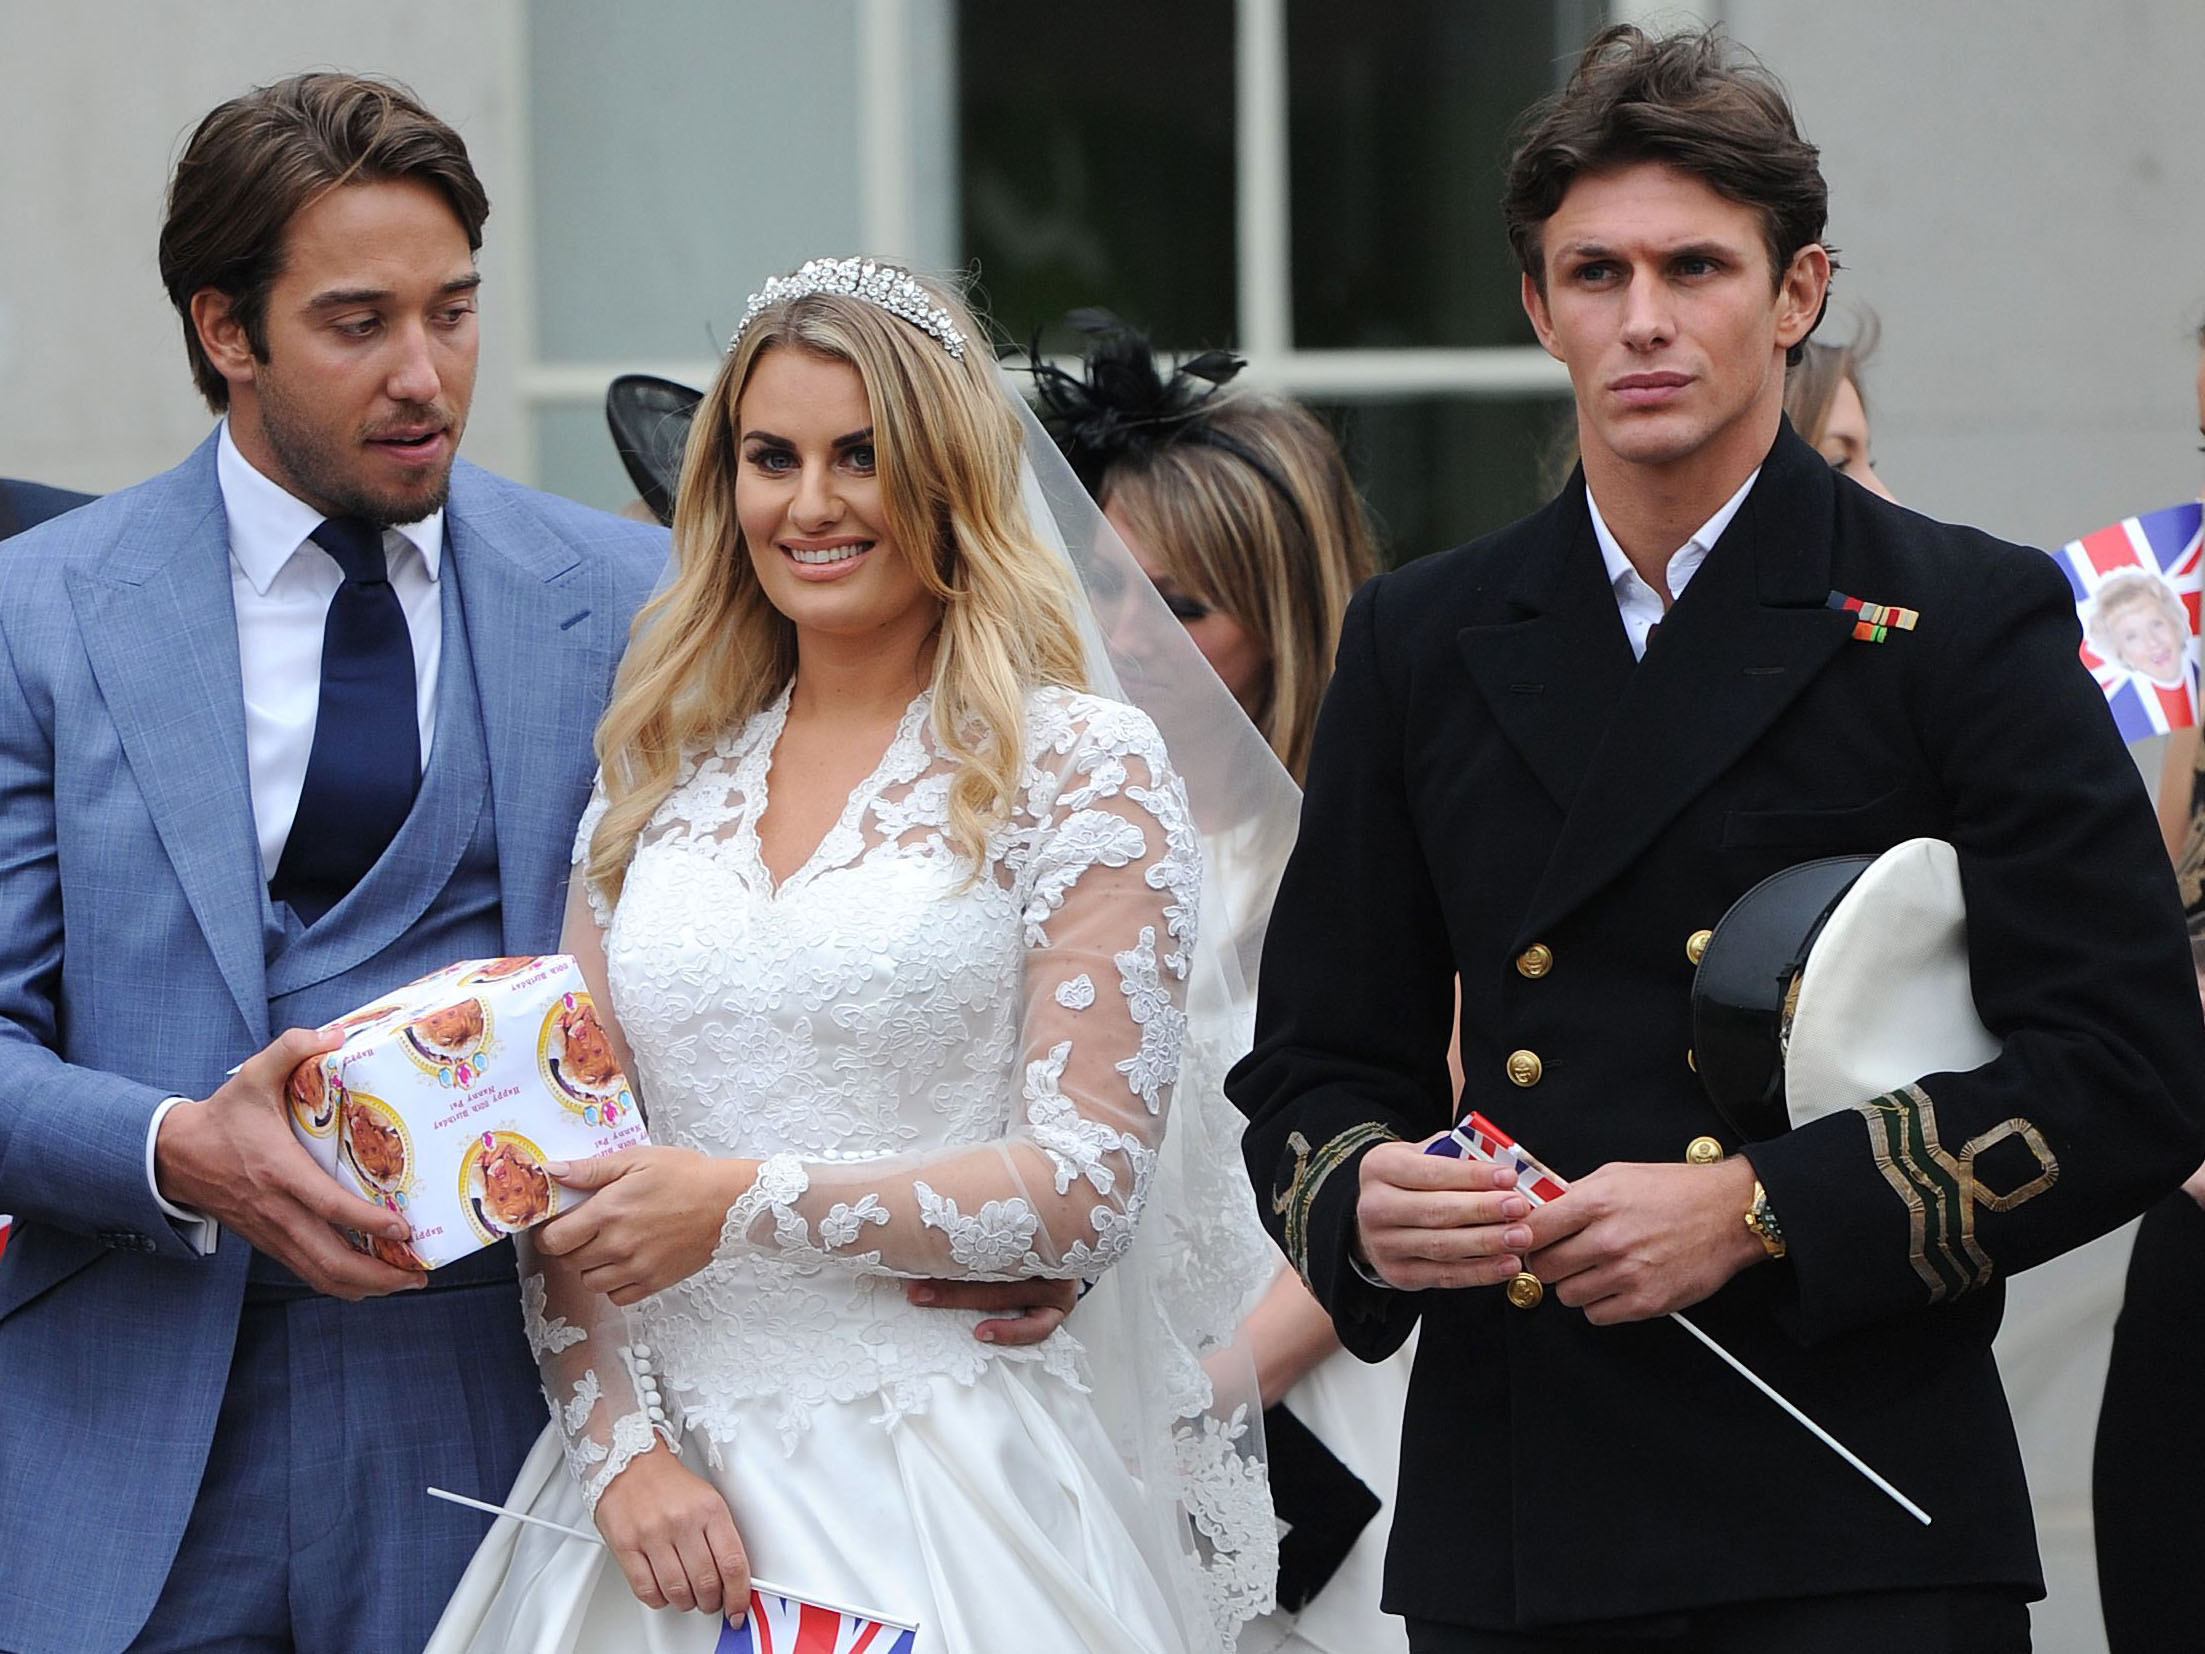 TOWIE Danielle Armstrong back together with James Lock